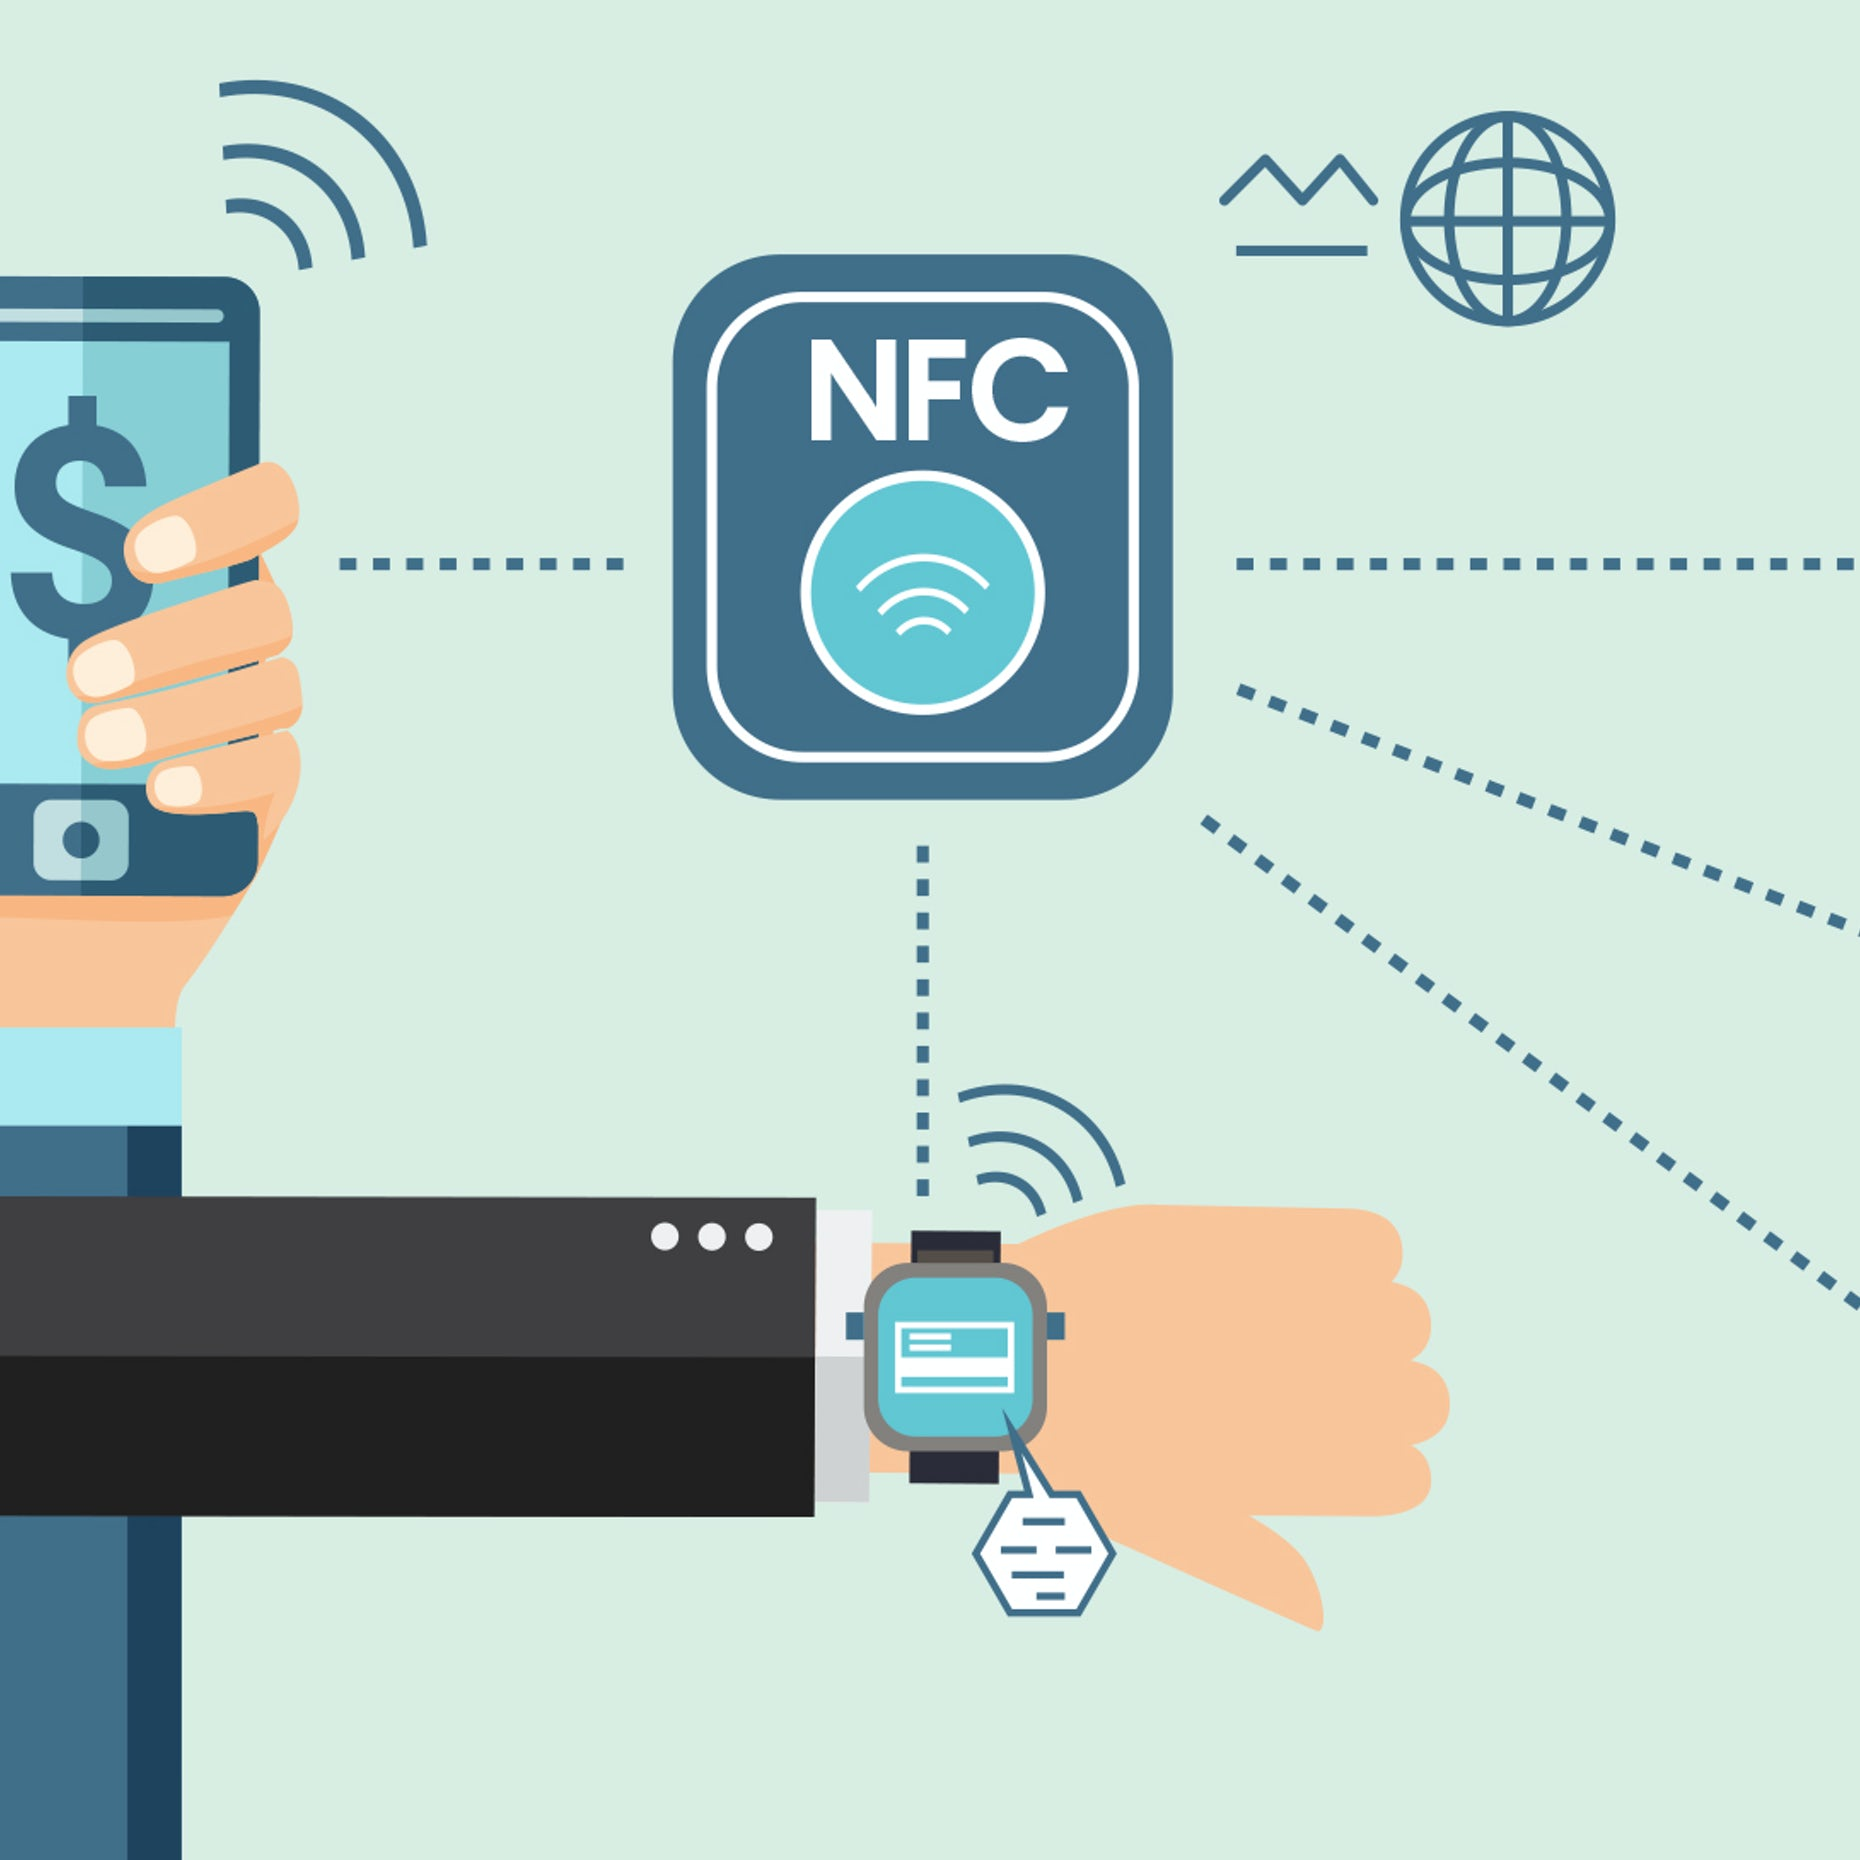 How to learn if your smartphone has NFC or not?